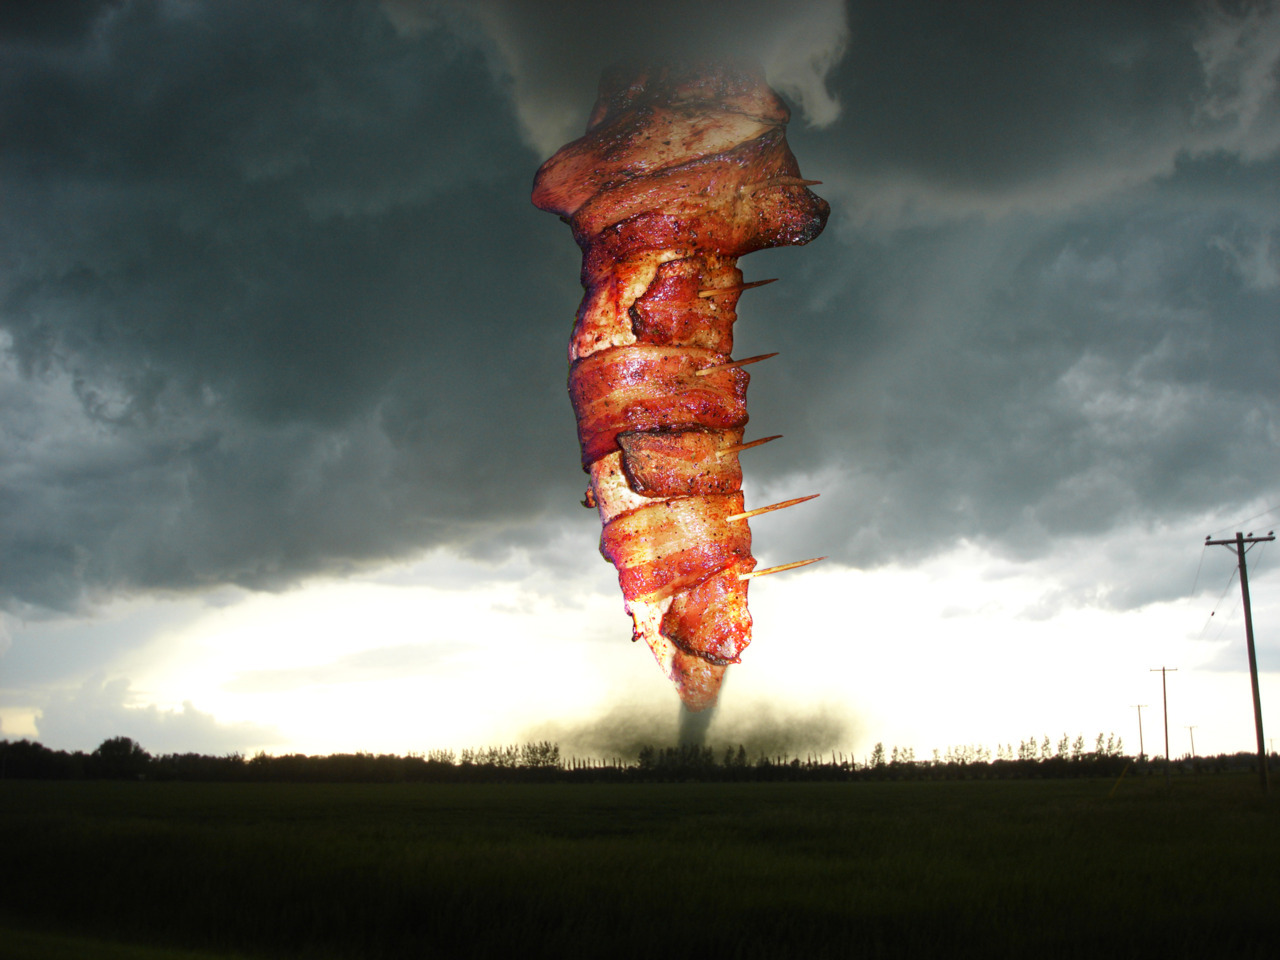 Bacon-wrapped tornado in Oklahoma.